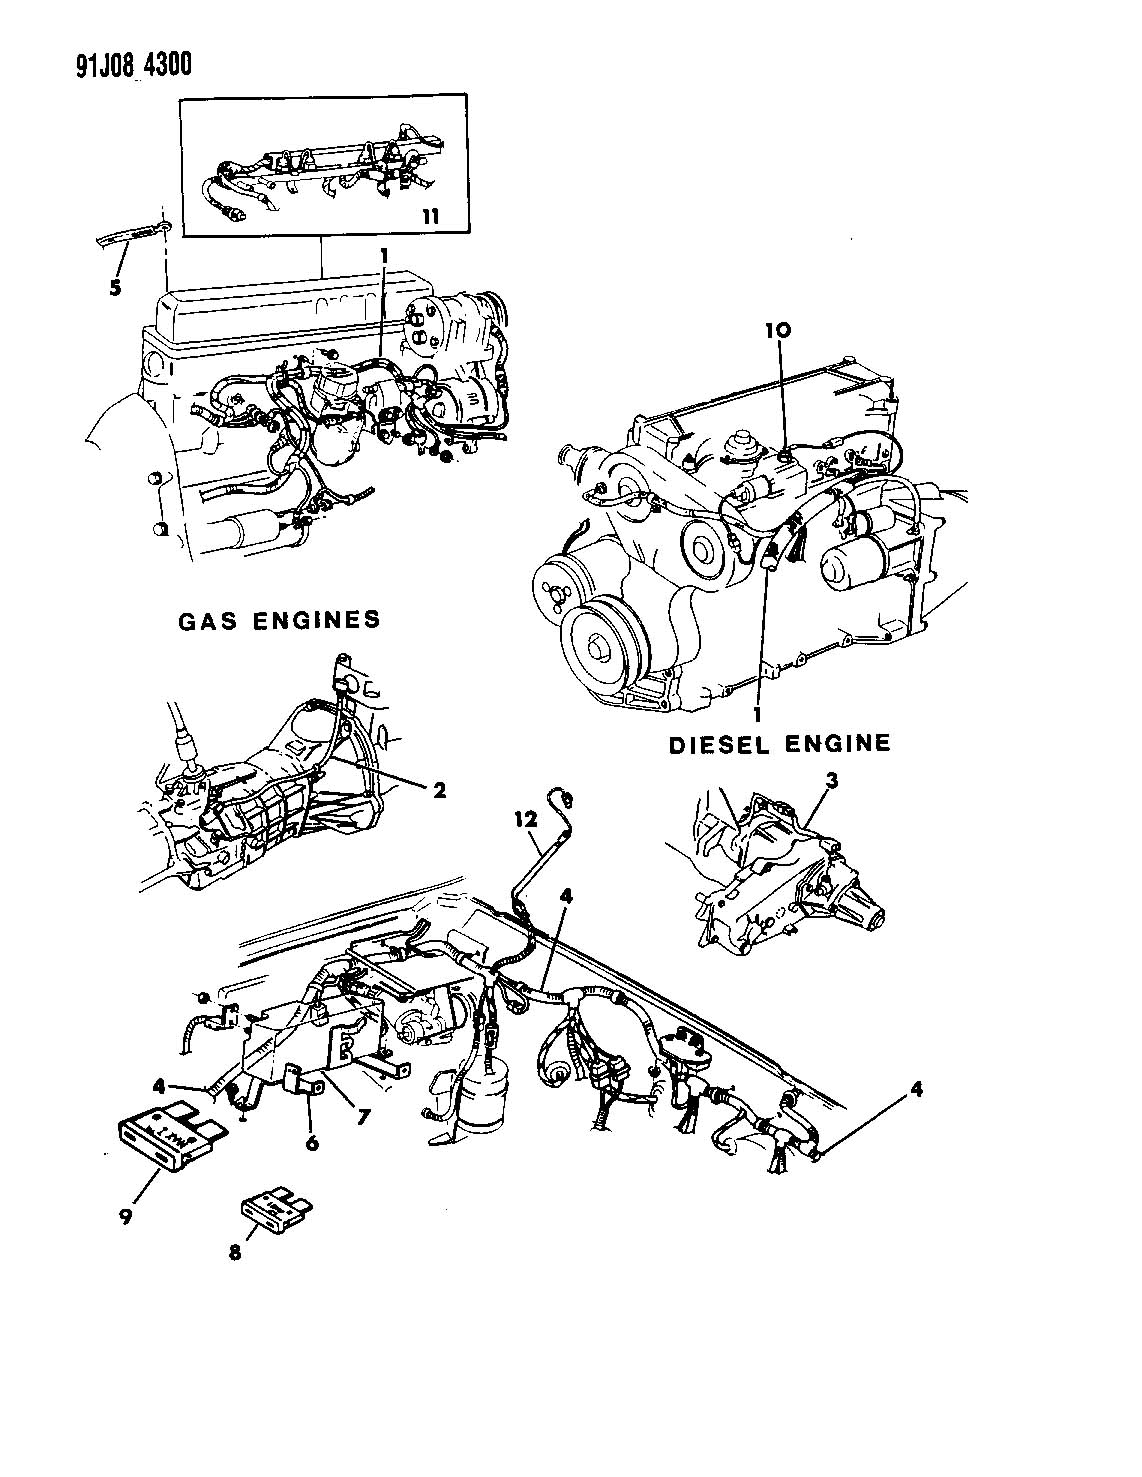 Jeep Comanche Fuse Block, Jeep, Free Engine Image For User